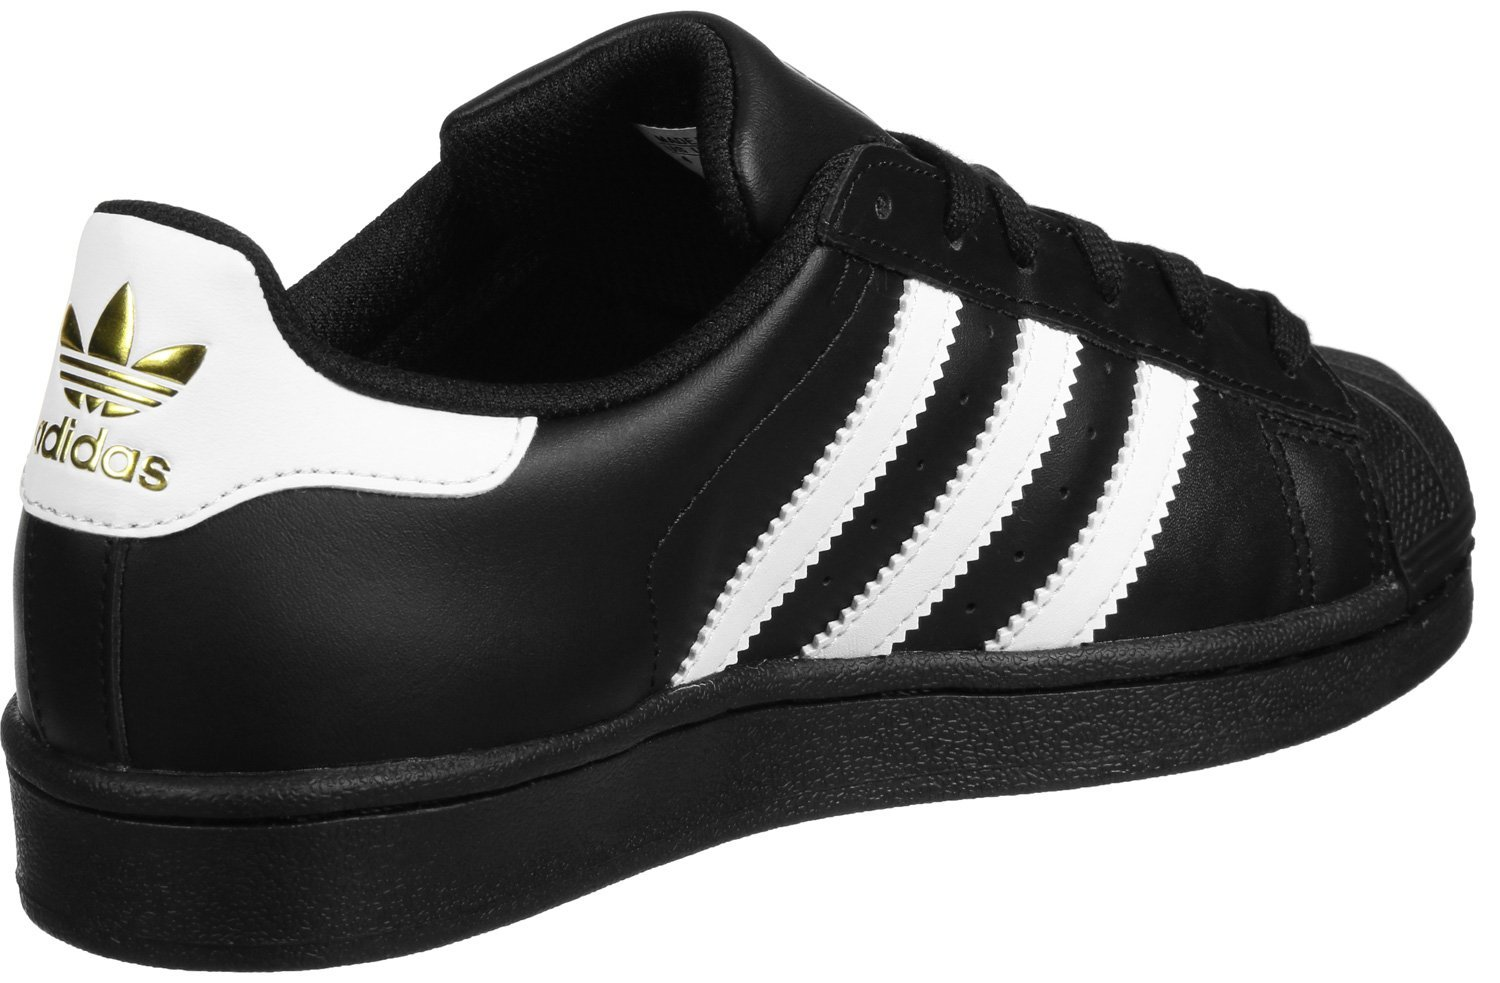 best service 62674 33b77 adidas Originals Superstar BB2872, Sneakers Unisex - Bambini. Da ADIDAS  ORIGINALS